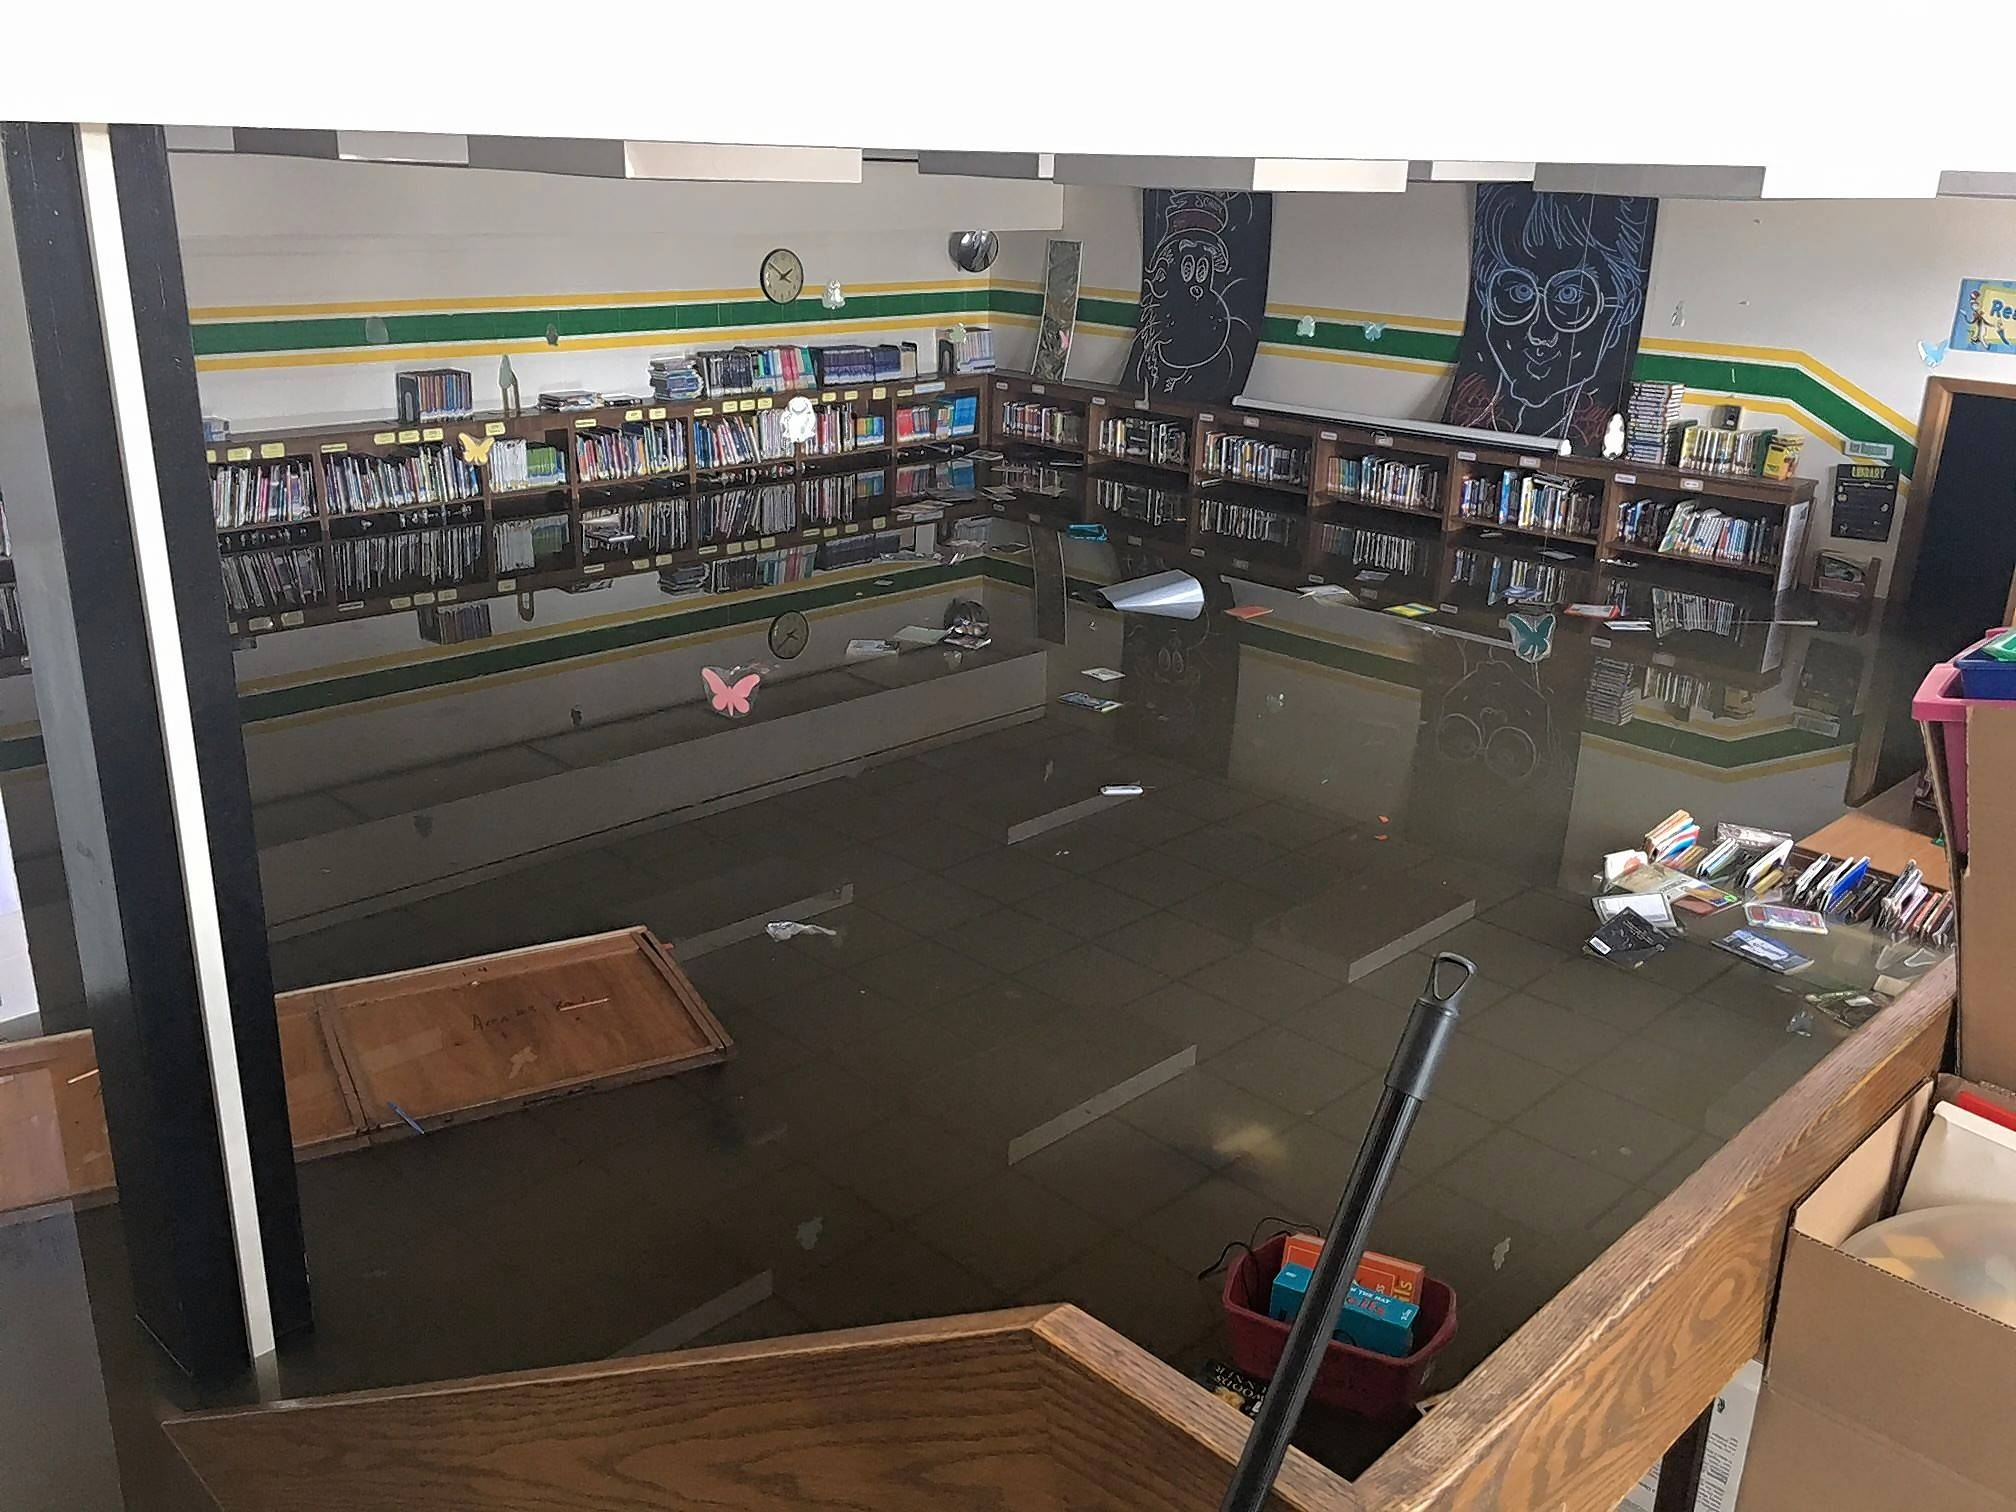 Flooding caused severe damage last week at Murphy Elementary School in Round Lake. The Round Lake Area Schools Education Foundation is collecting donations to help repair damage and replace materials lost in the flooding.